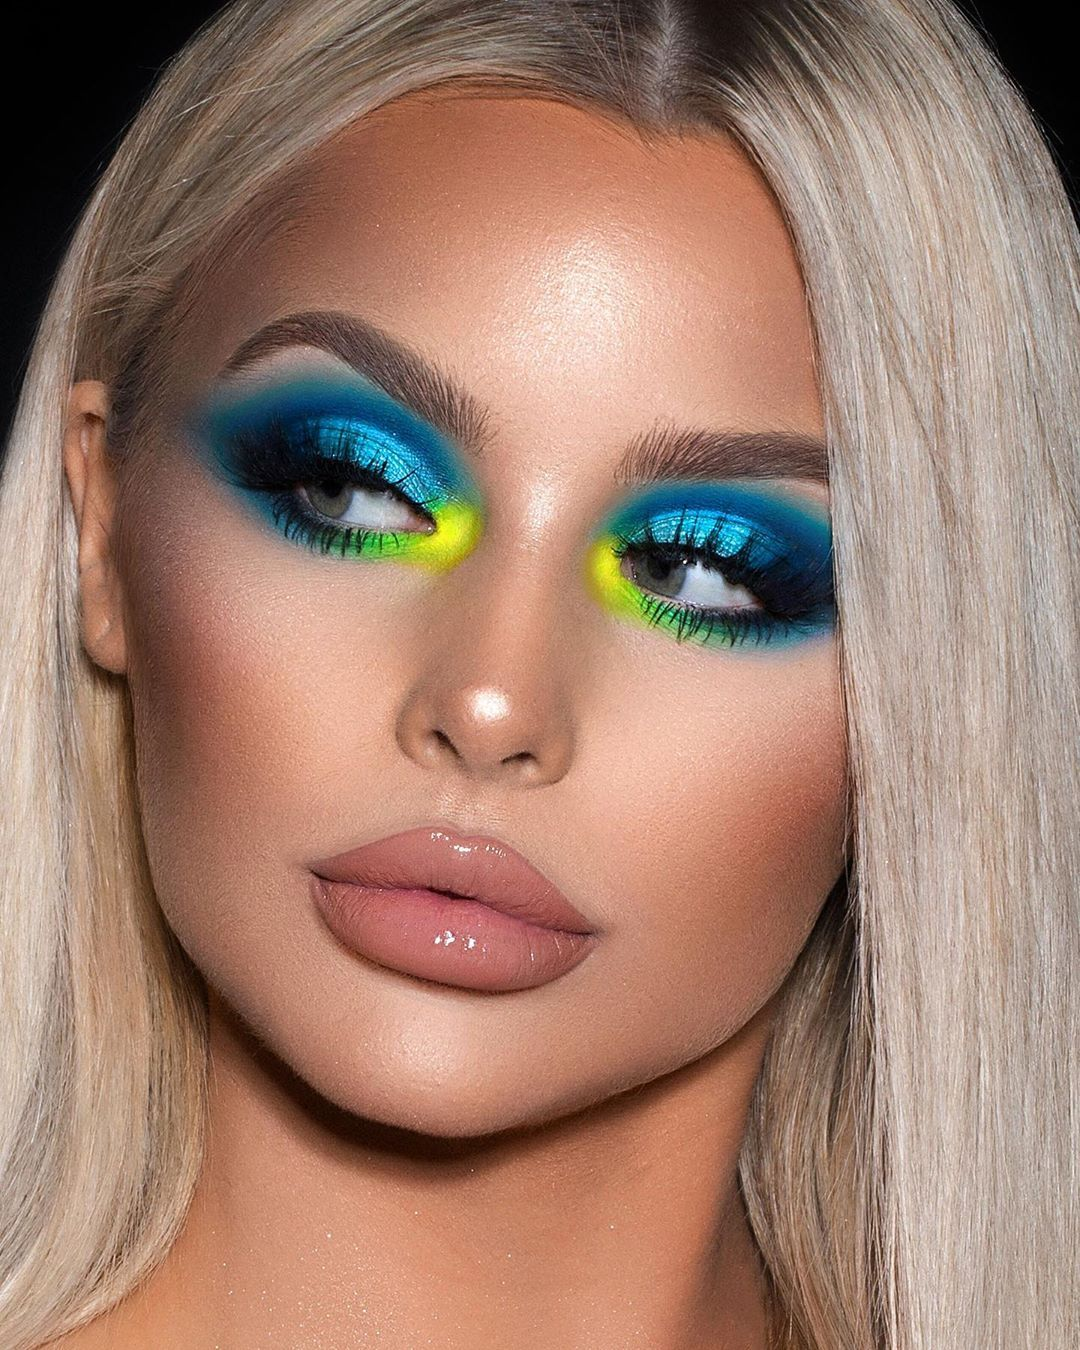 """Brookelle McKenzie's Instagram post: """"🦋🐠🧩🌠 / violet voss / @snapsstudio / @shopvioletvoss bright vibes palette ✨🦋 this was fun  ive been such a busy bee recently. ive had to…"""""""